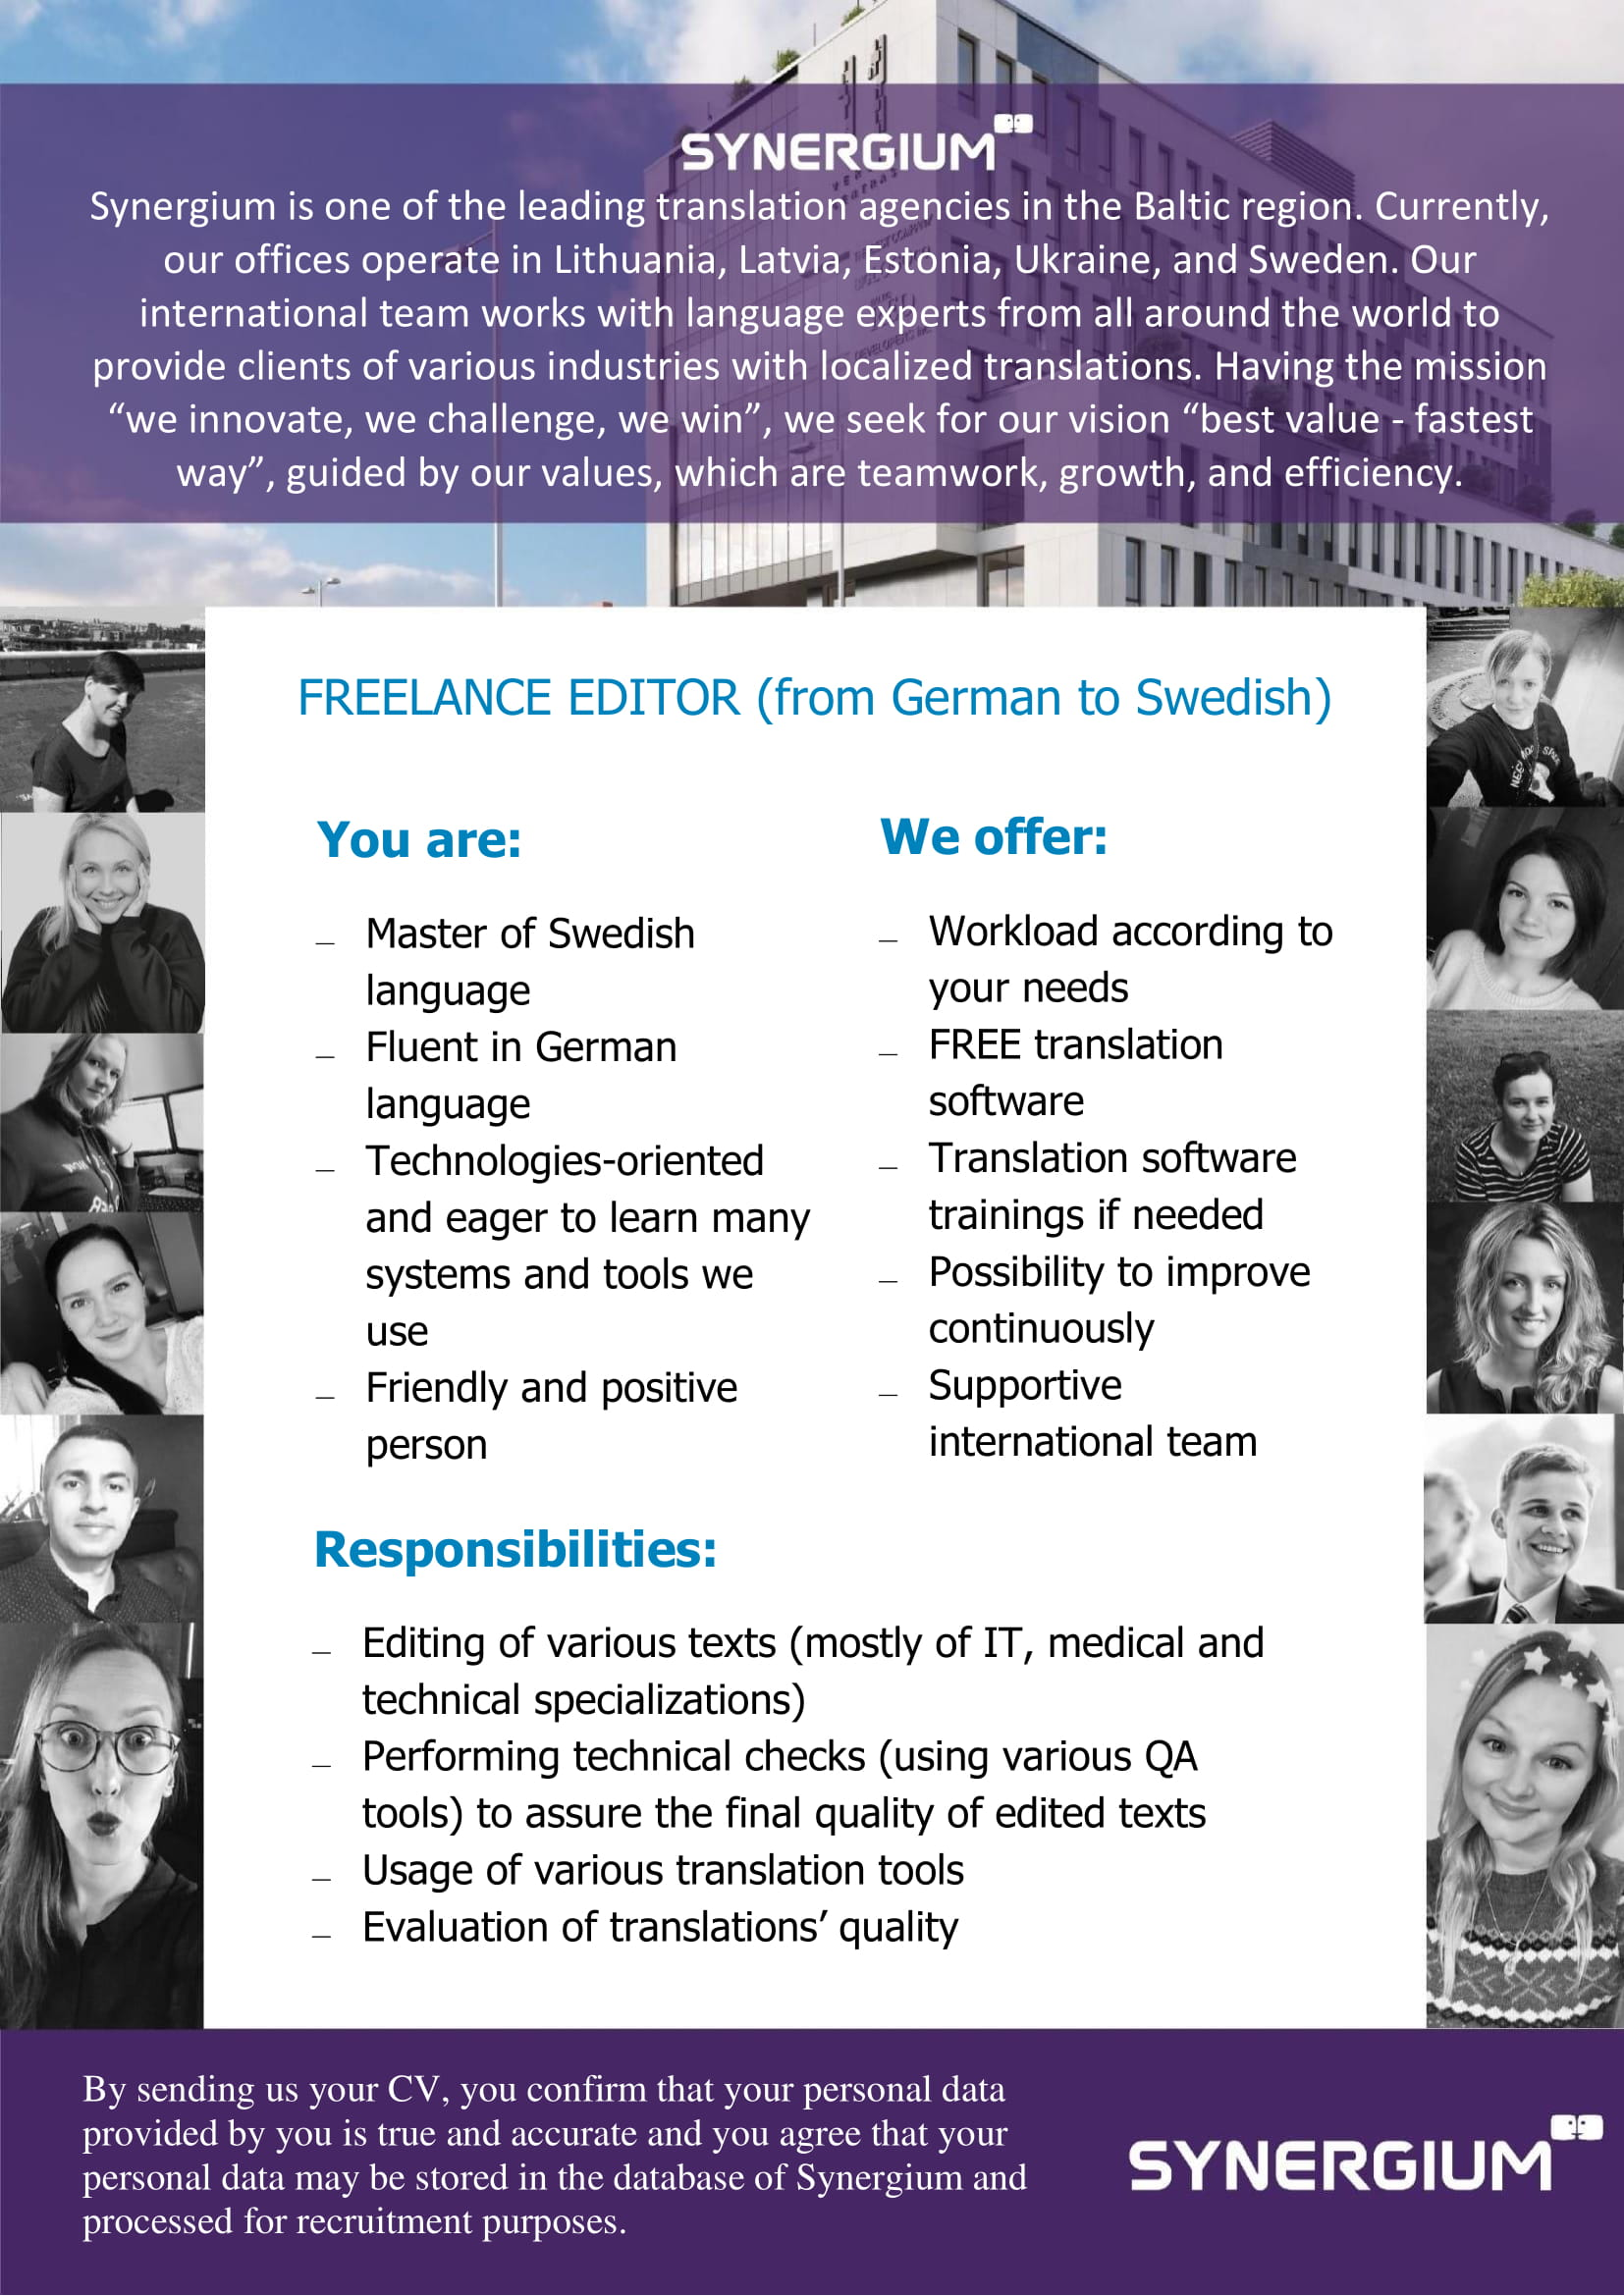 freelance editor from german to swedish job advertisement synergium